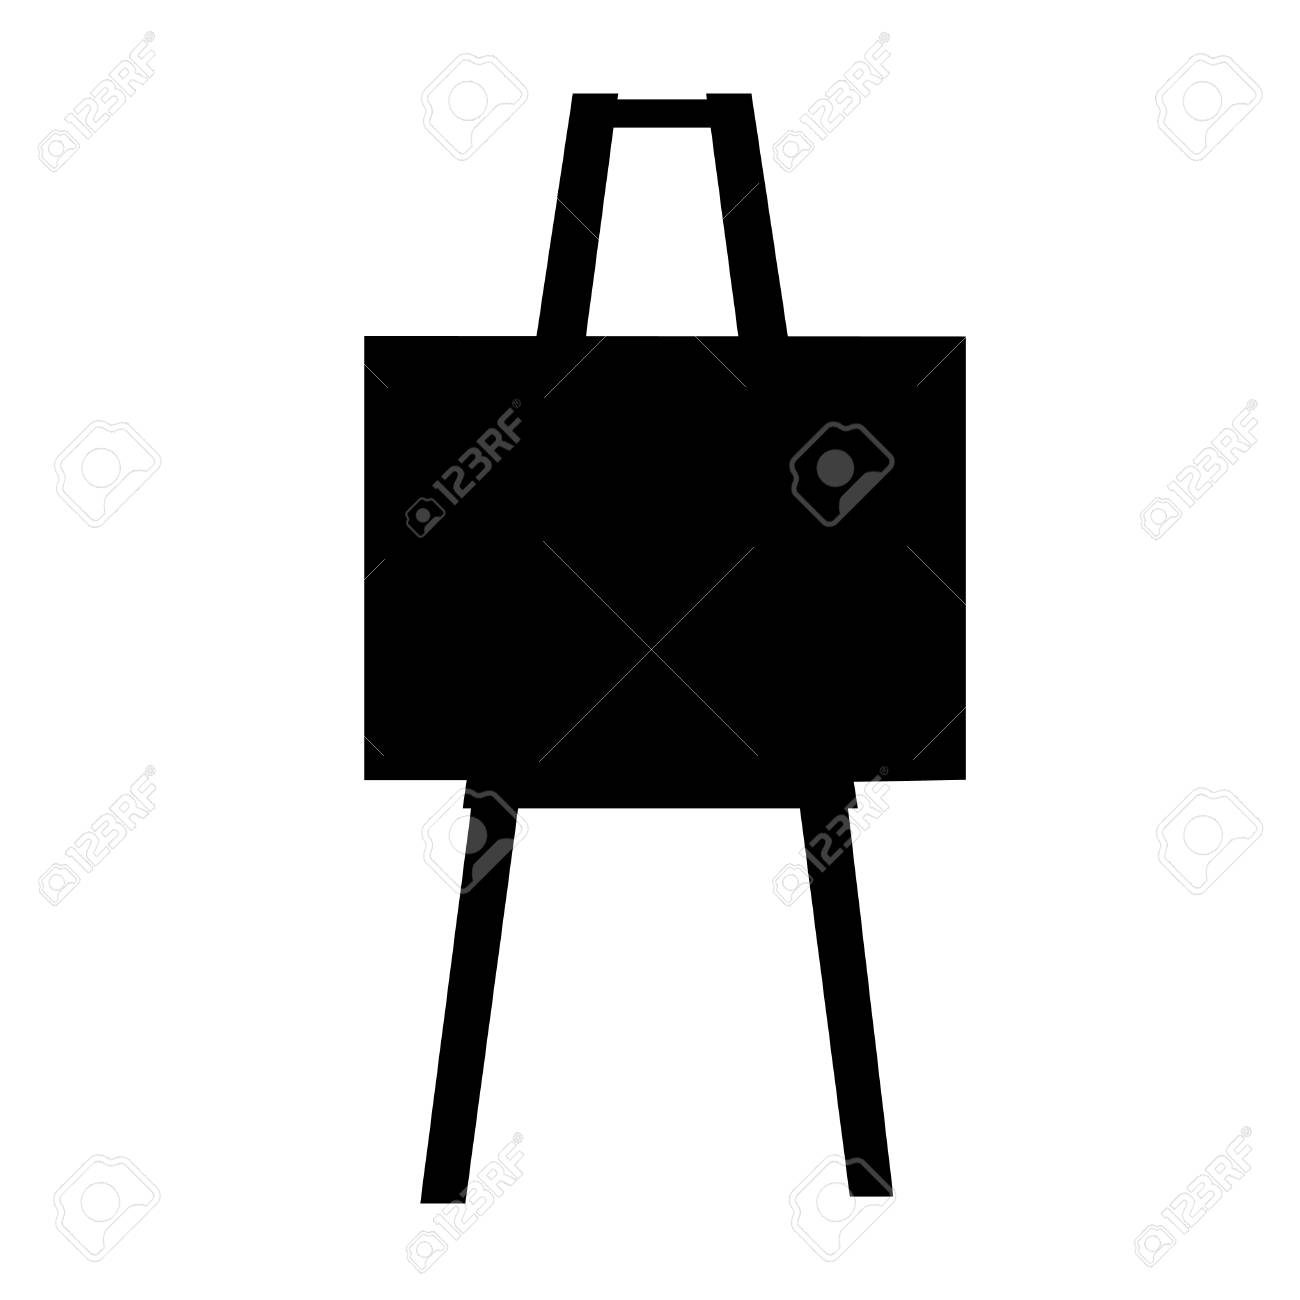 Black And White Silhouette Of An Art Easel Silhouette Royalty Free